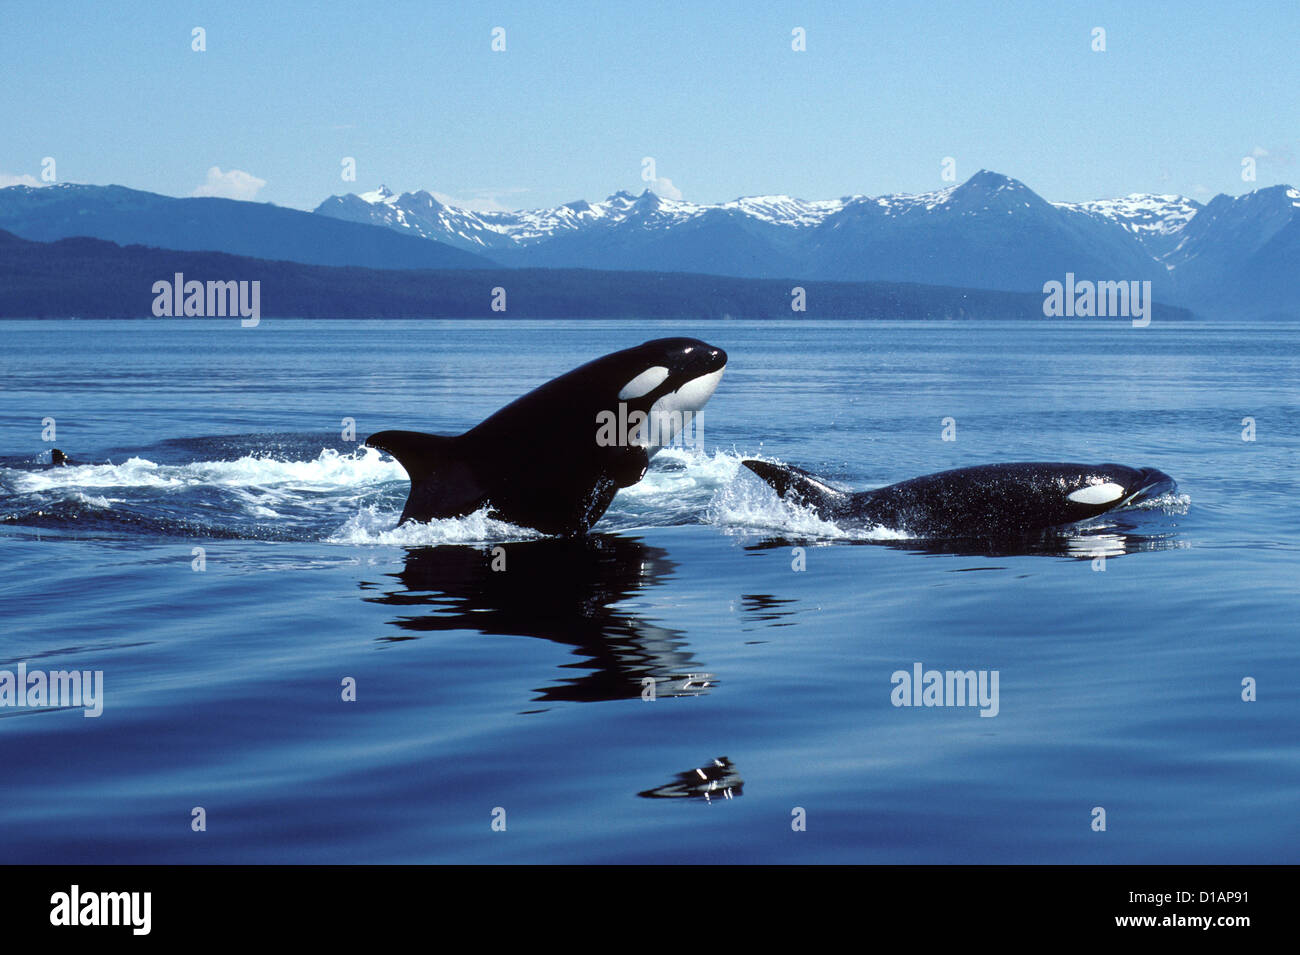 Killer whale; Orca.Orcinus orca.Breaching.Photographed in Icy Strait, Southeast Alaska, USA - Stock Image